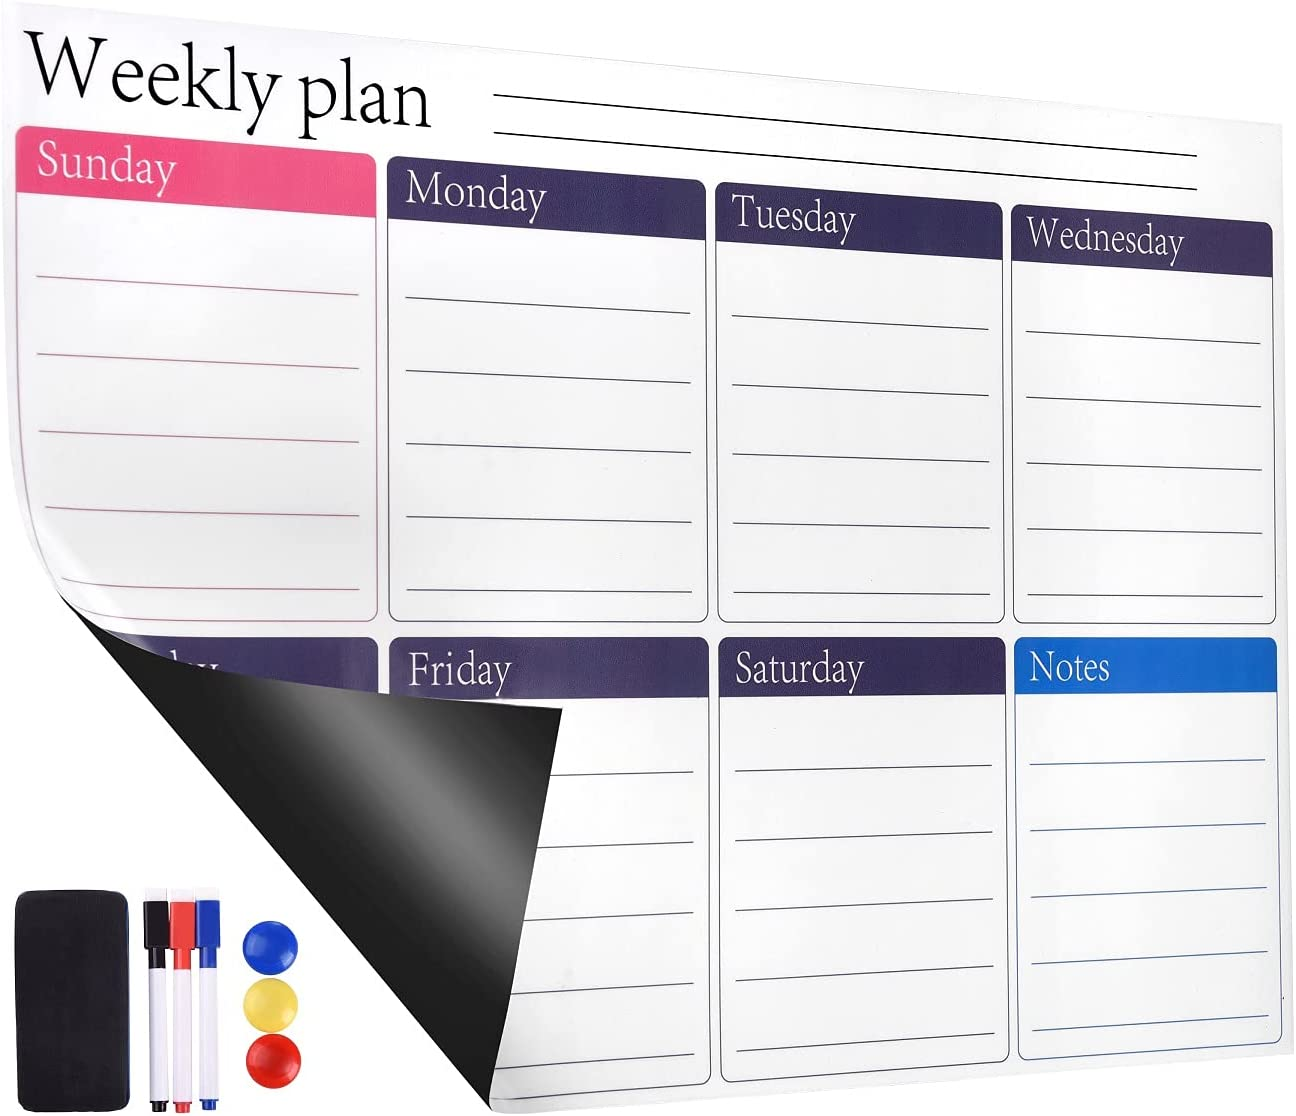 Olodeer Dry Erase Planner Calendar Refrigerato Limited Special Price for Sale with Magnetic